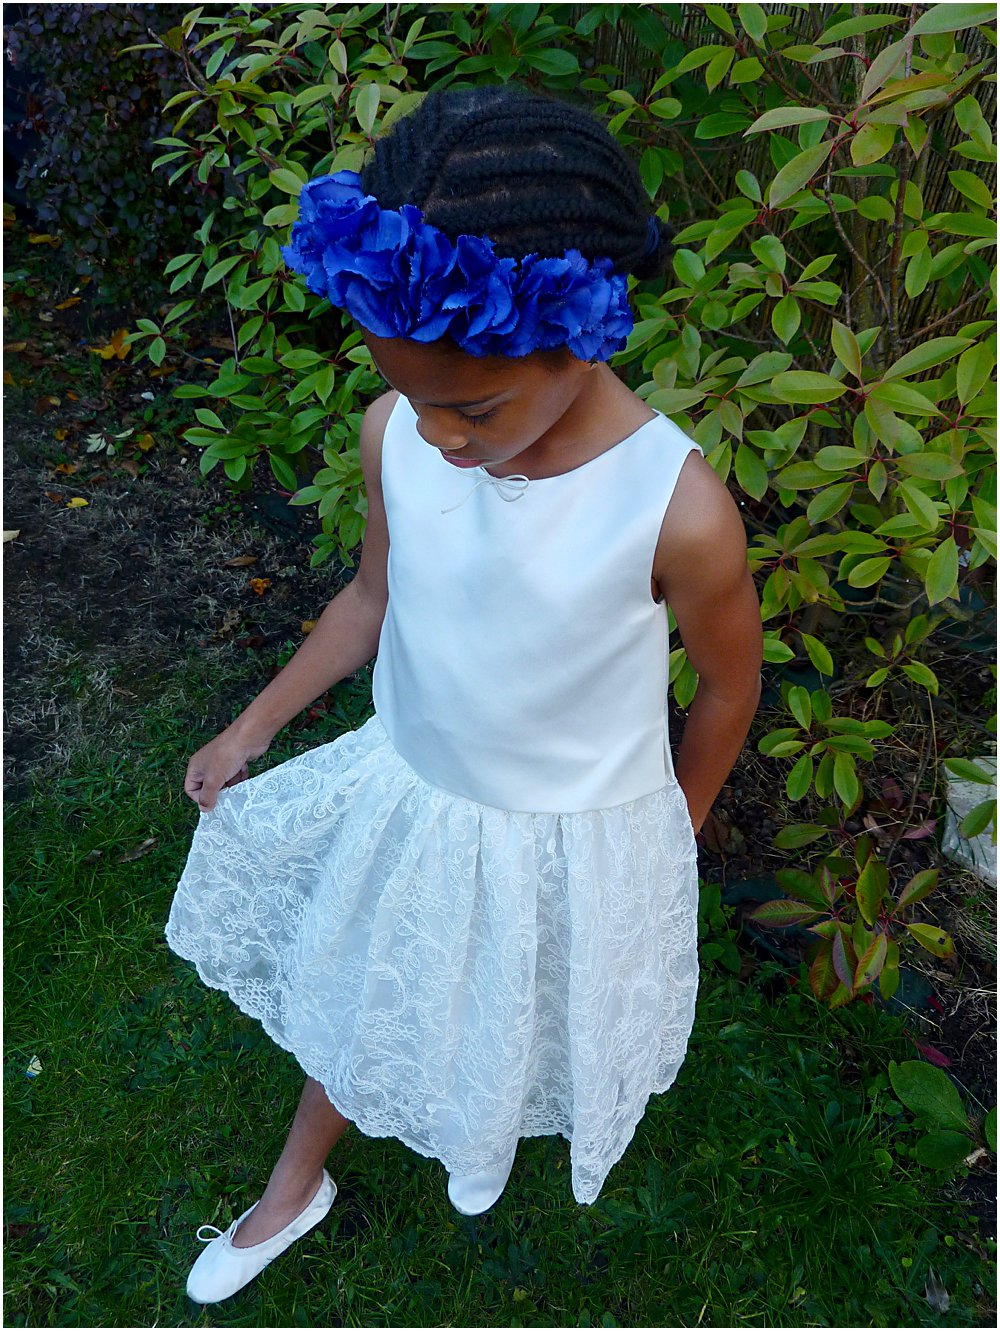 Little black girl smiling at wearing a gorgeous lace party dress by Little Bevan and head band by Clea Broad